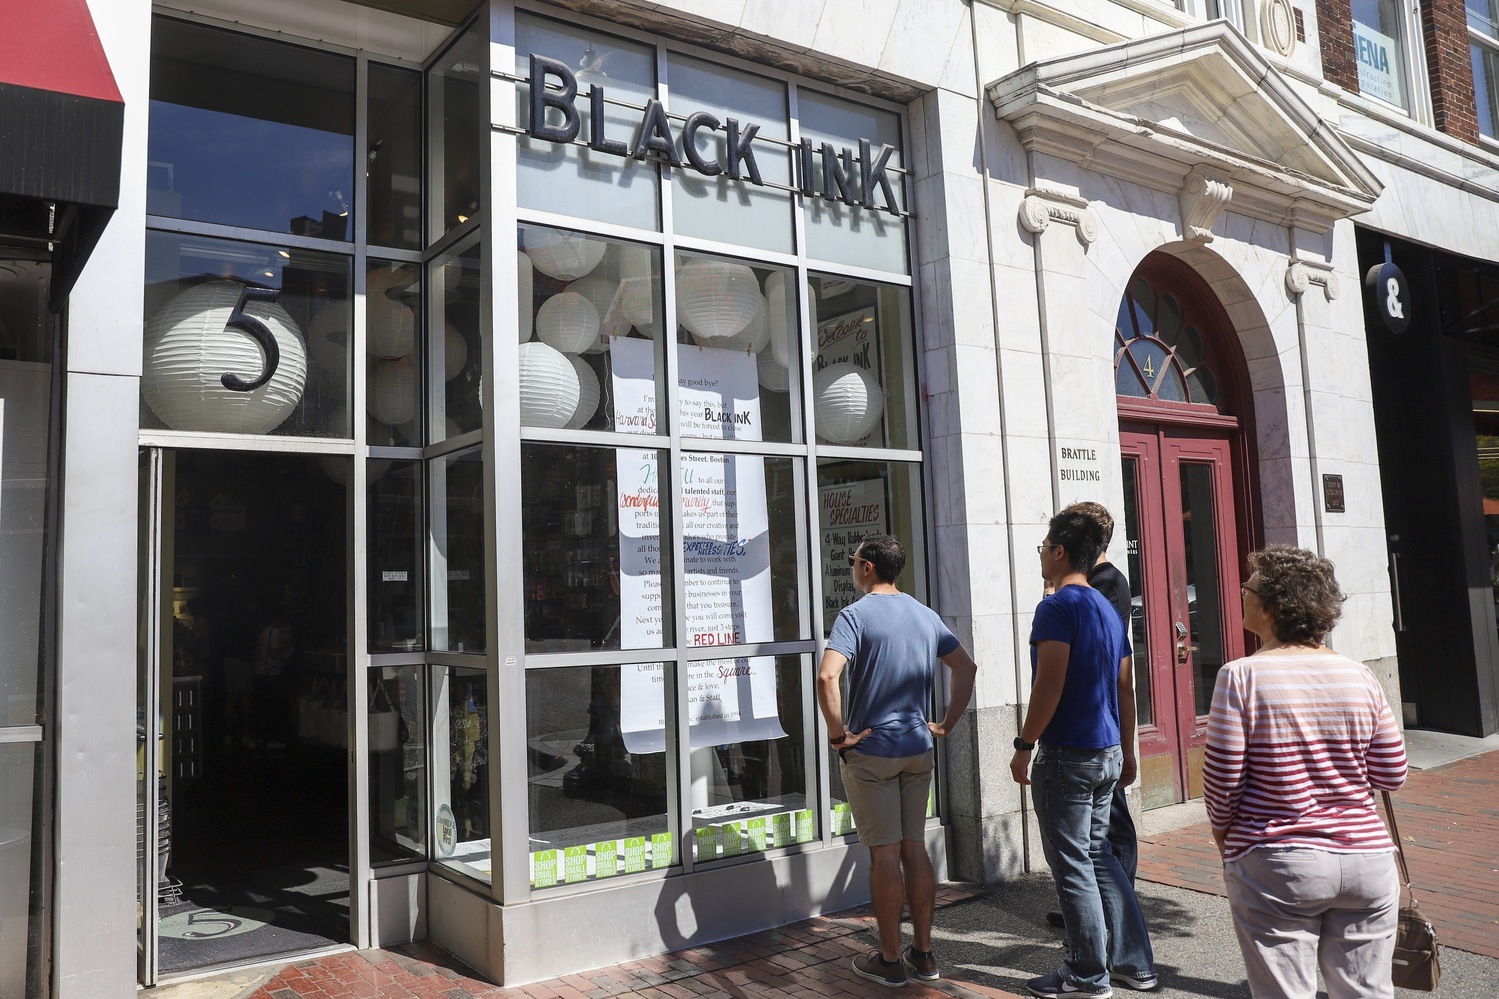 Harvard Square visitors stop to read the sign in front of Black Ink, which is shutting down amidst rising rent.